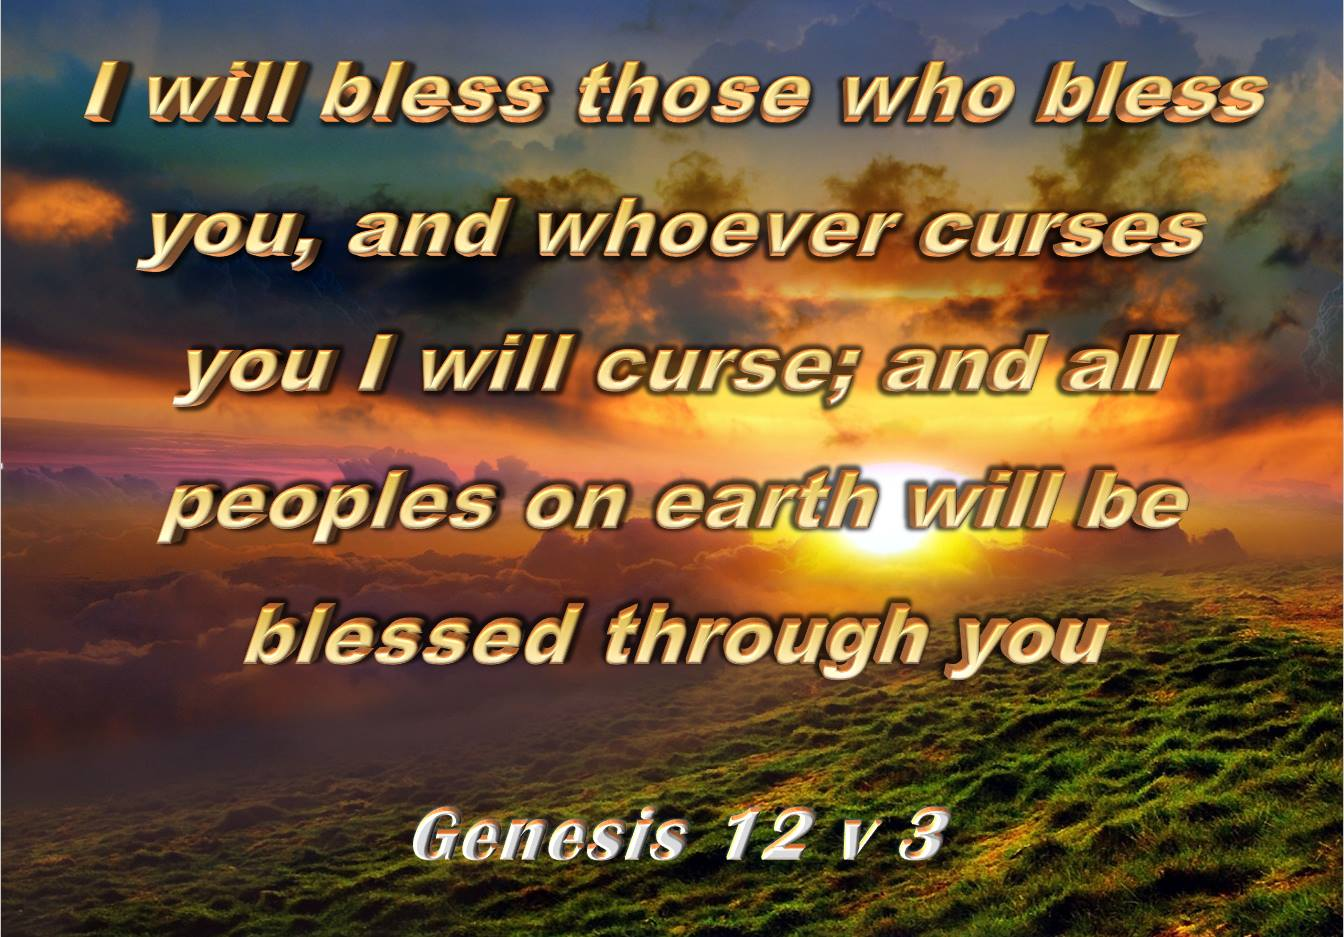 I will bless those who bless you